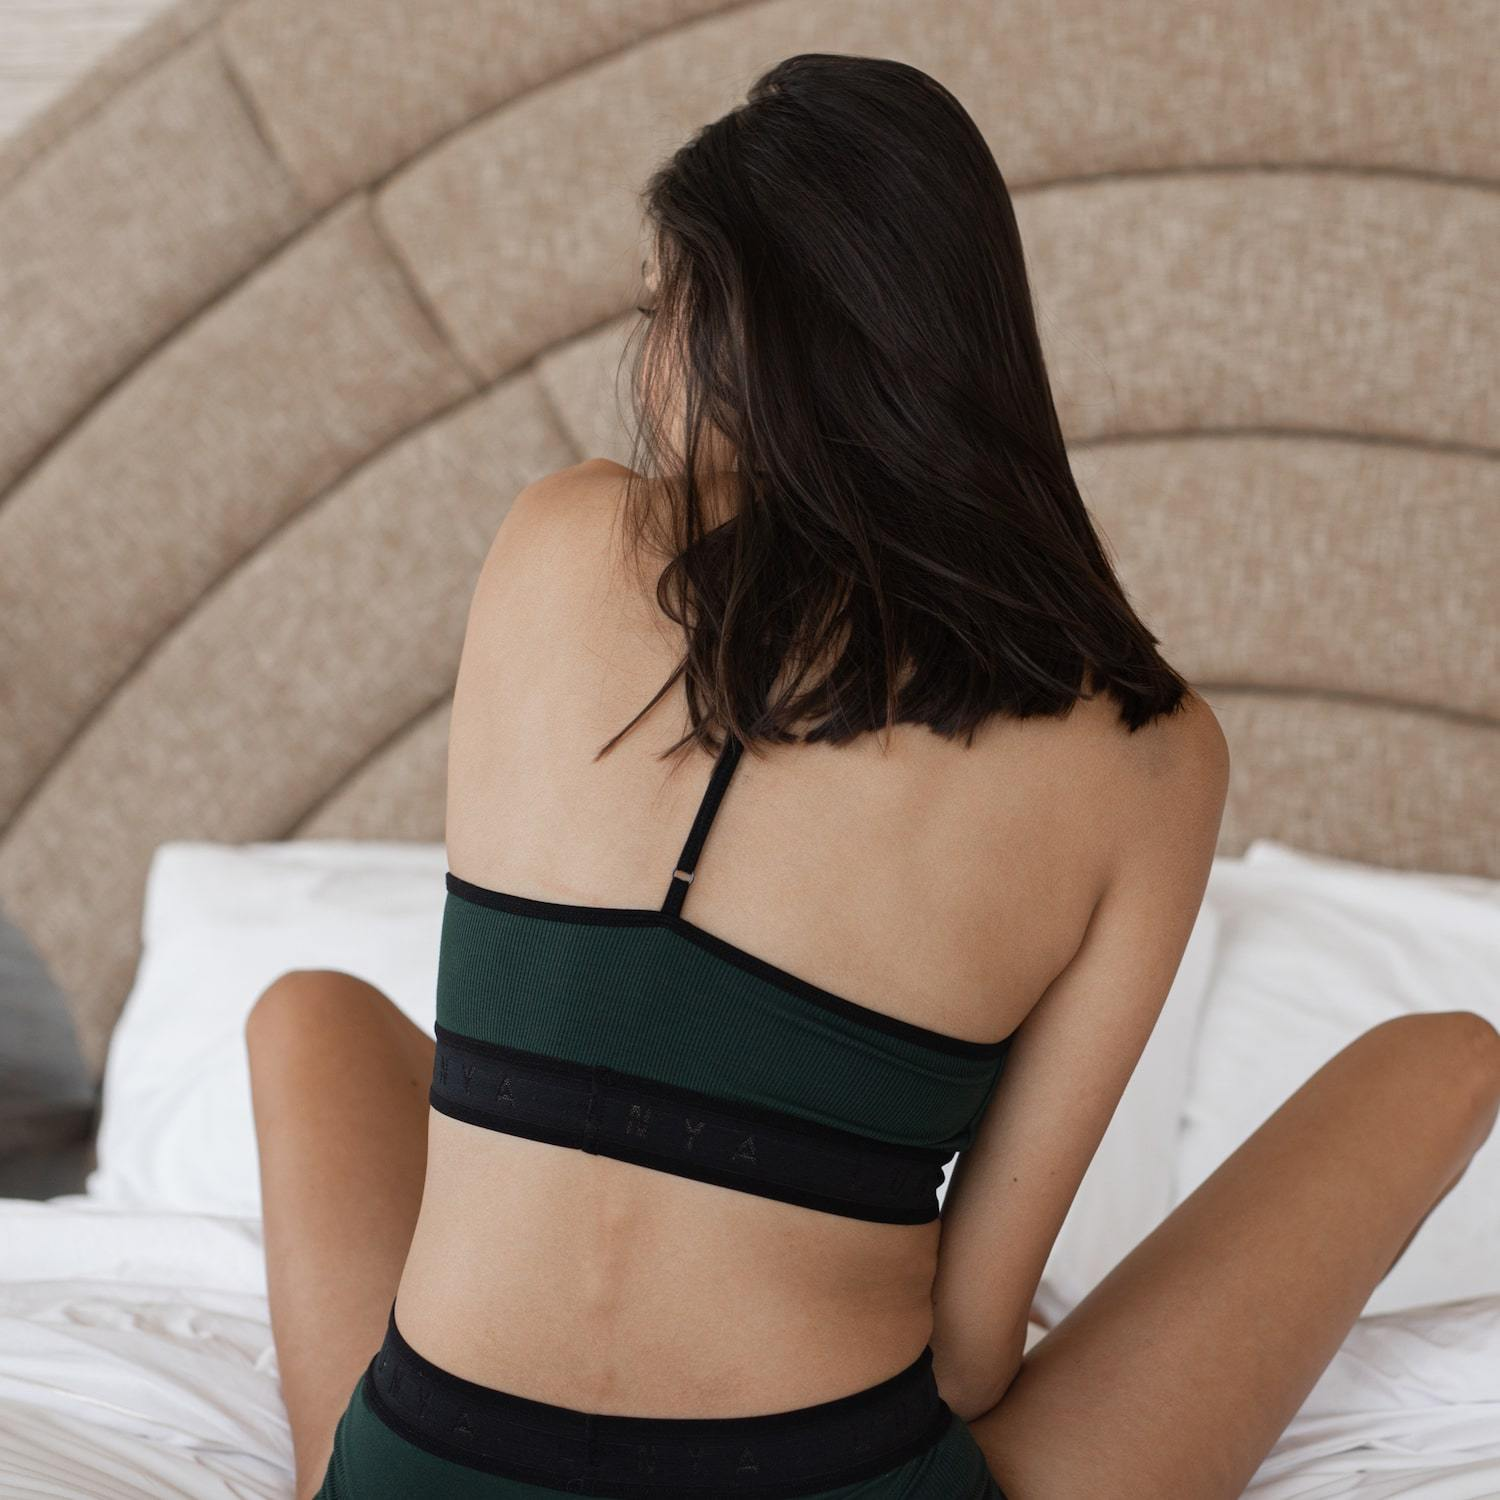 Lunya Sleepwear Supportive Modal Sleep Bralette - #Emerald/Black